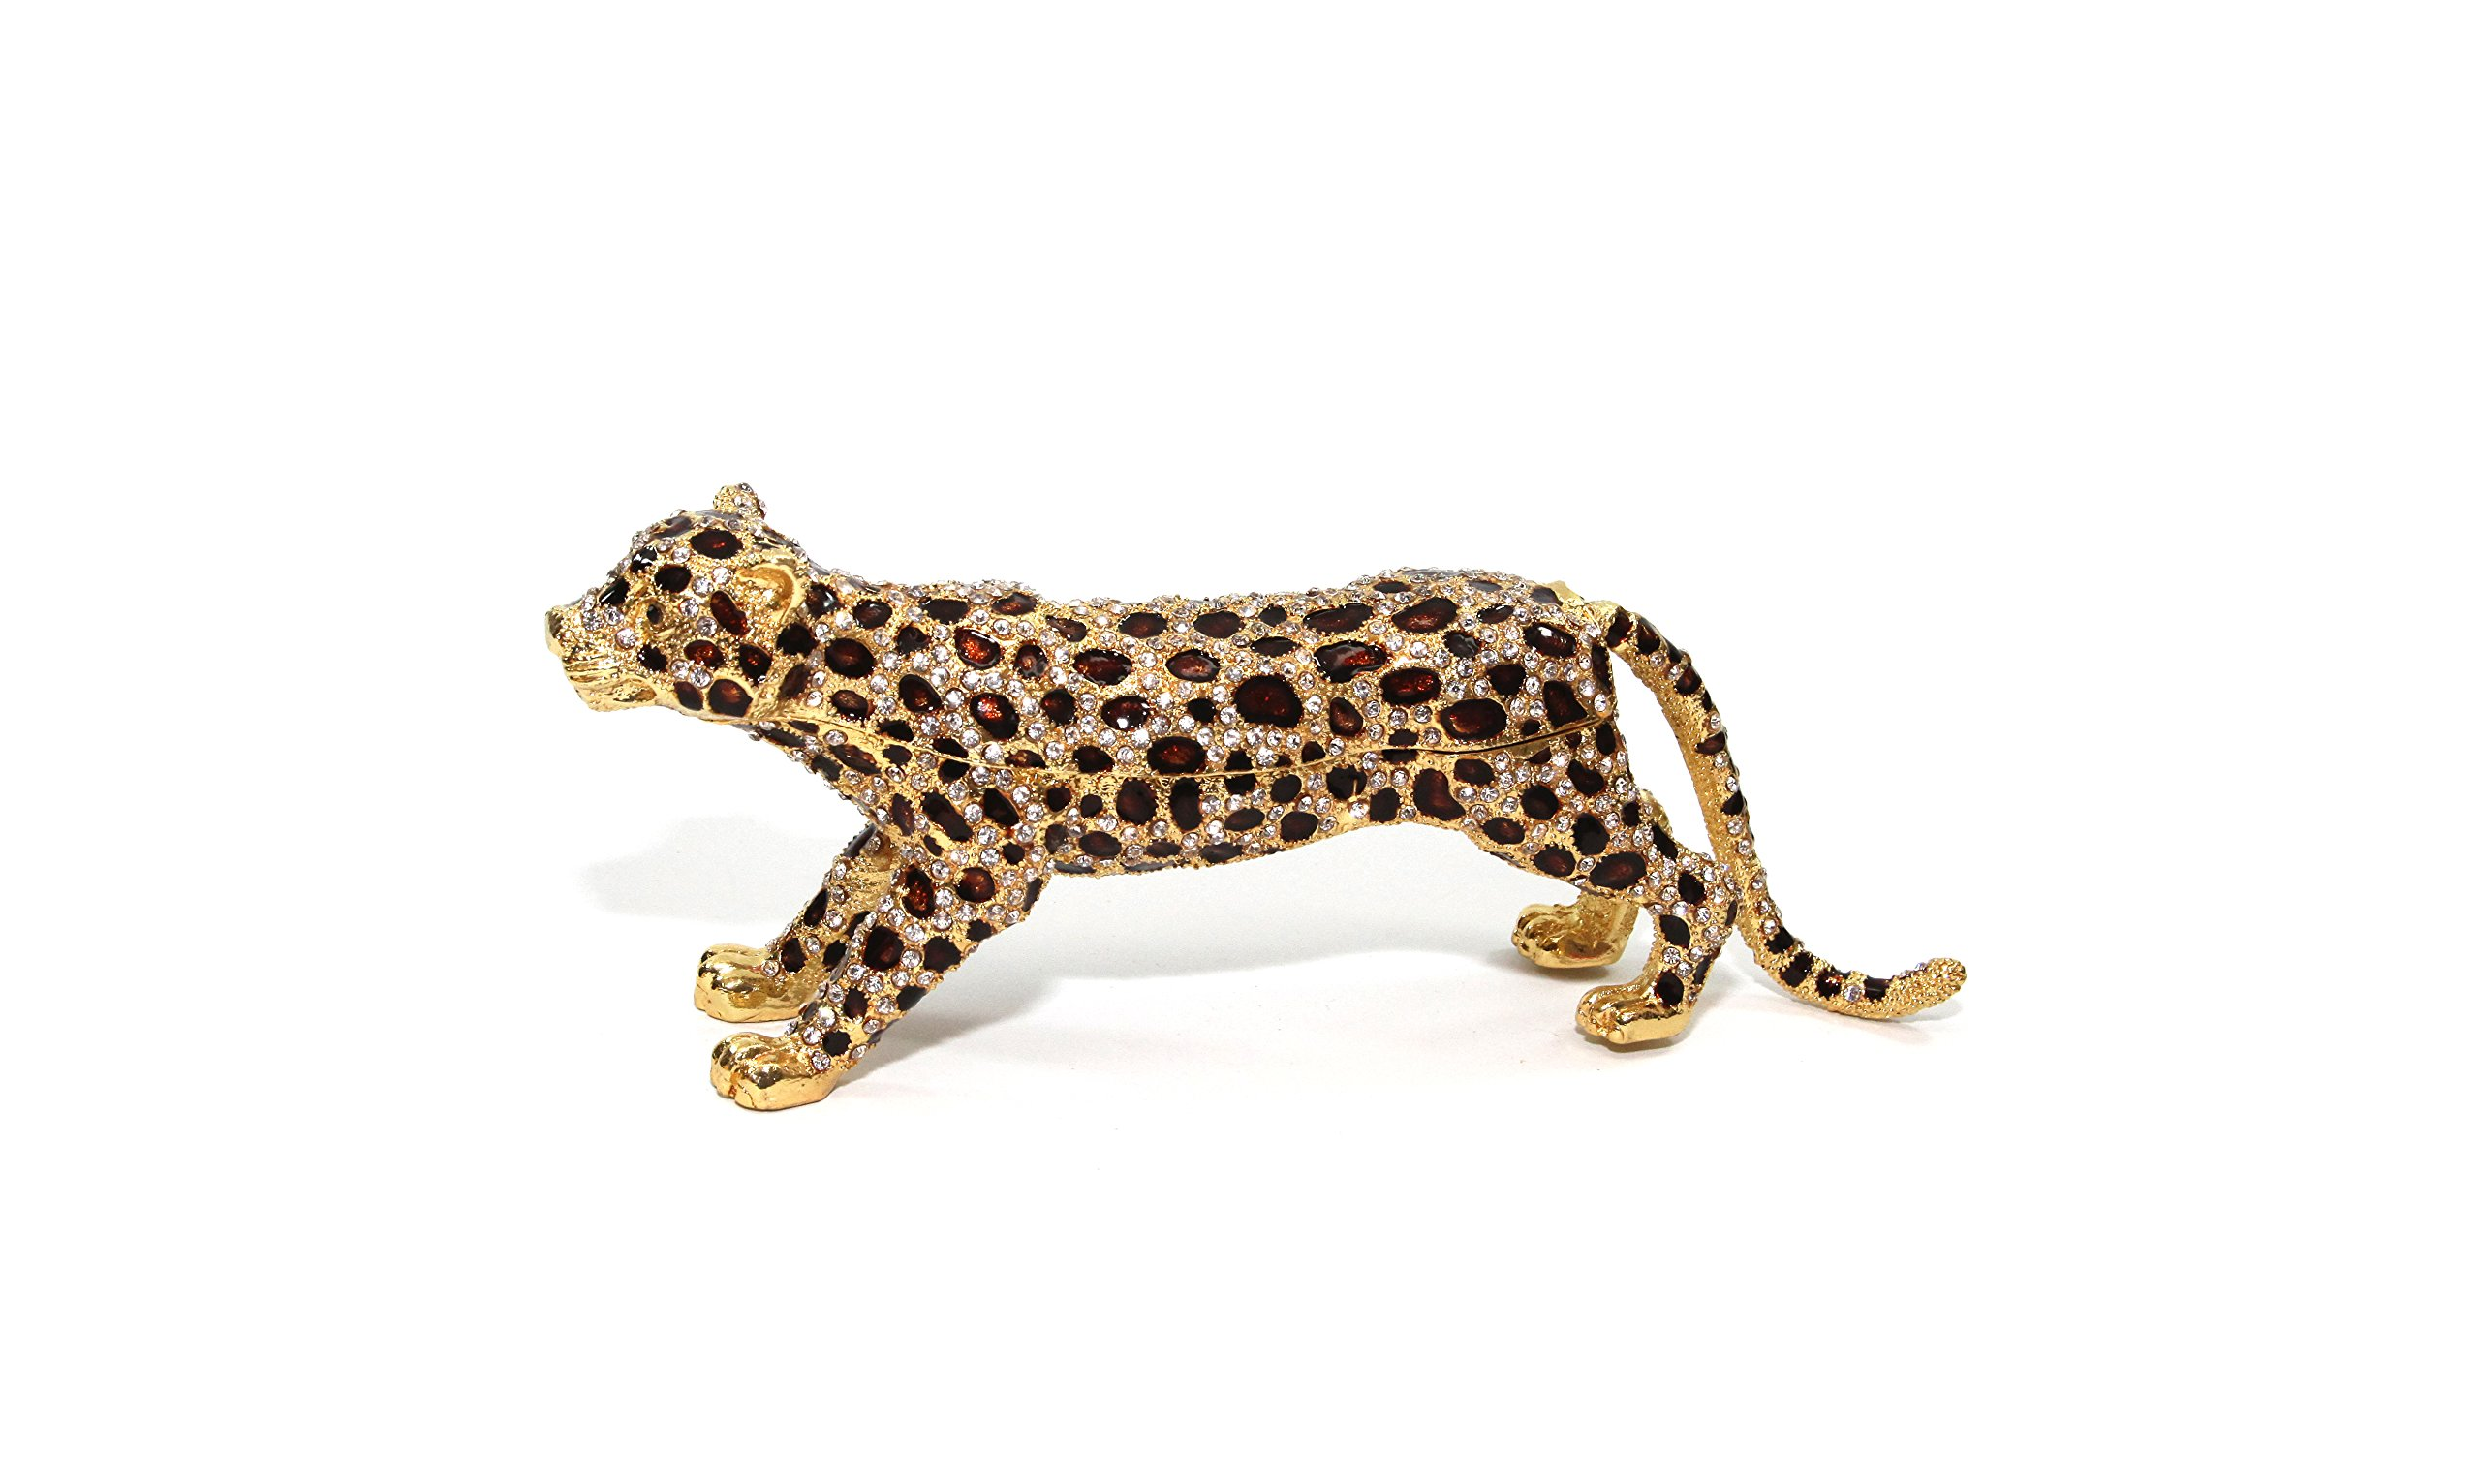 Gold & Brown Leopard 6-inch Enameled Figurine, 24K Gold Trinket Jewelry Box with Swarovski Crystal, Hand-made (Leopard)